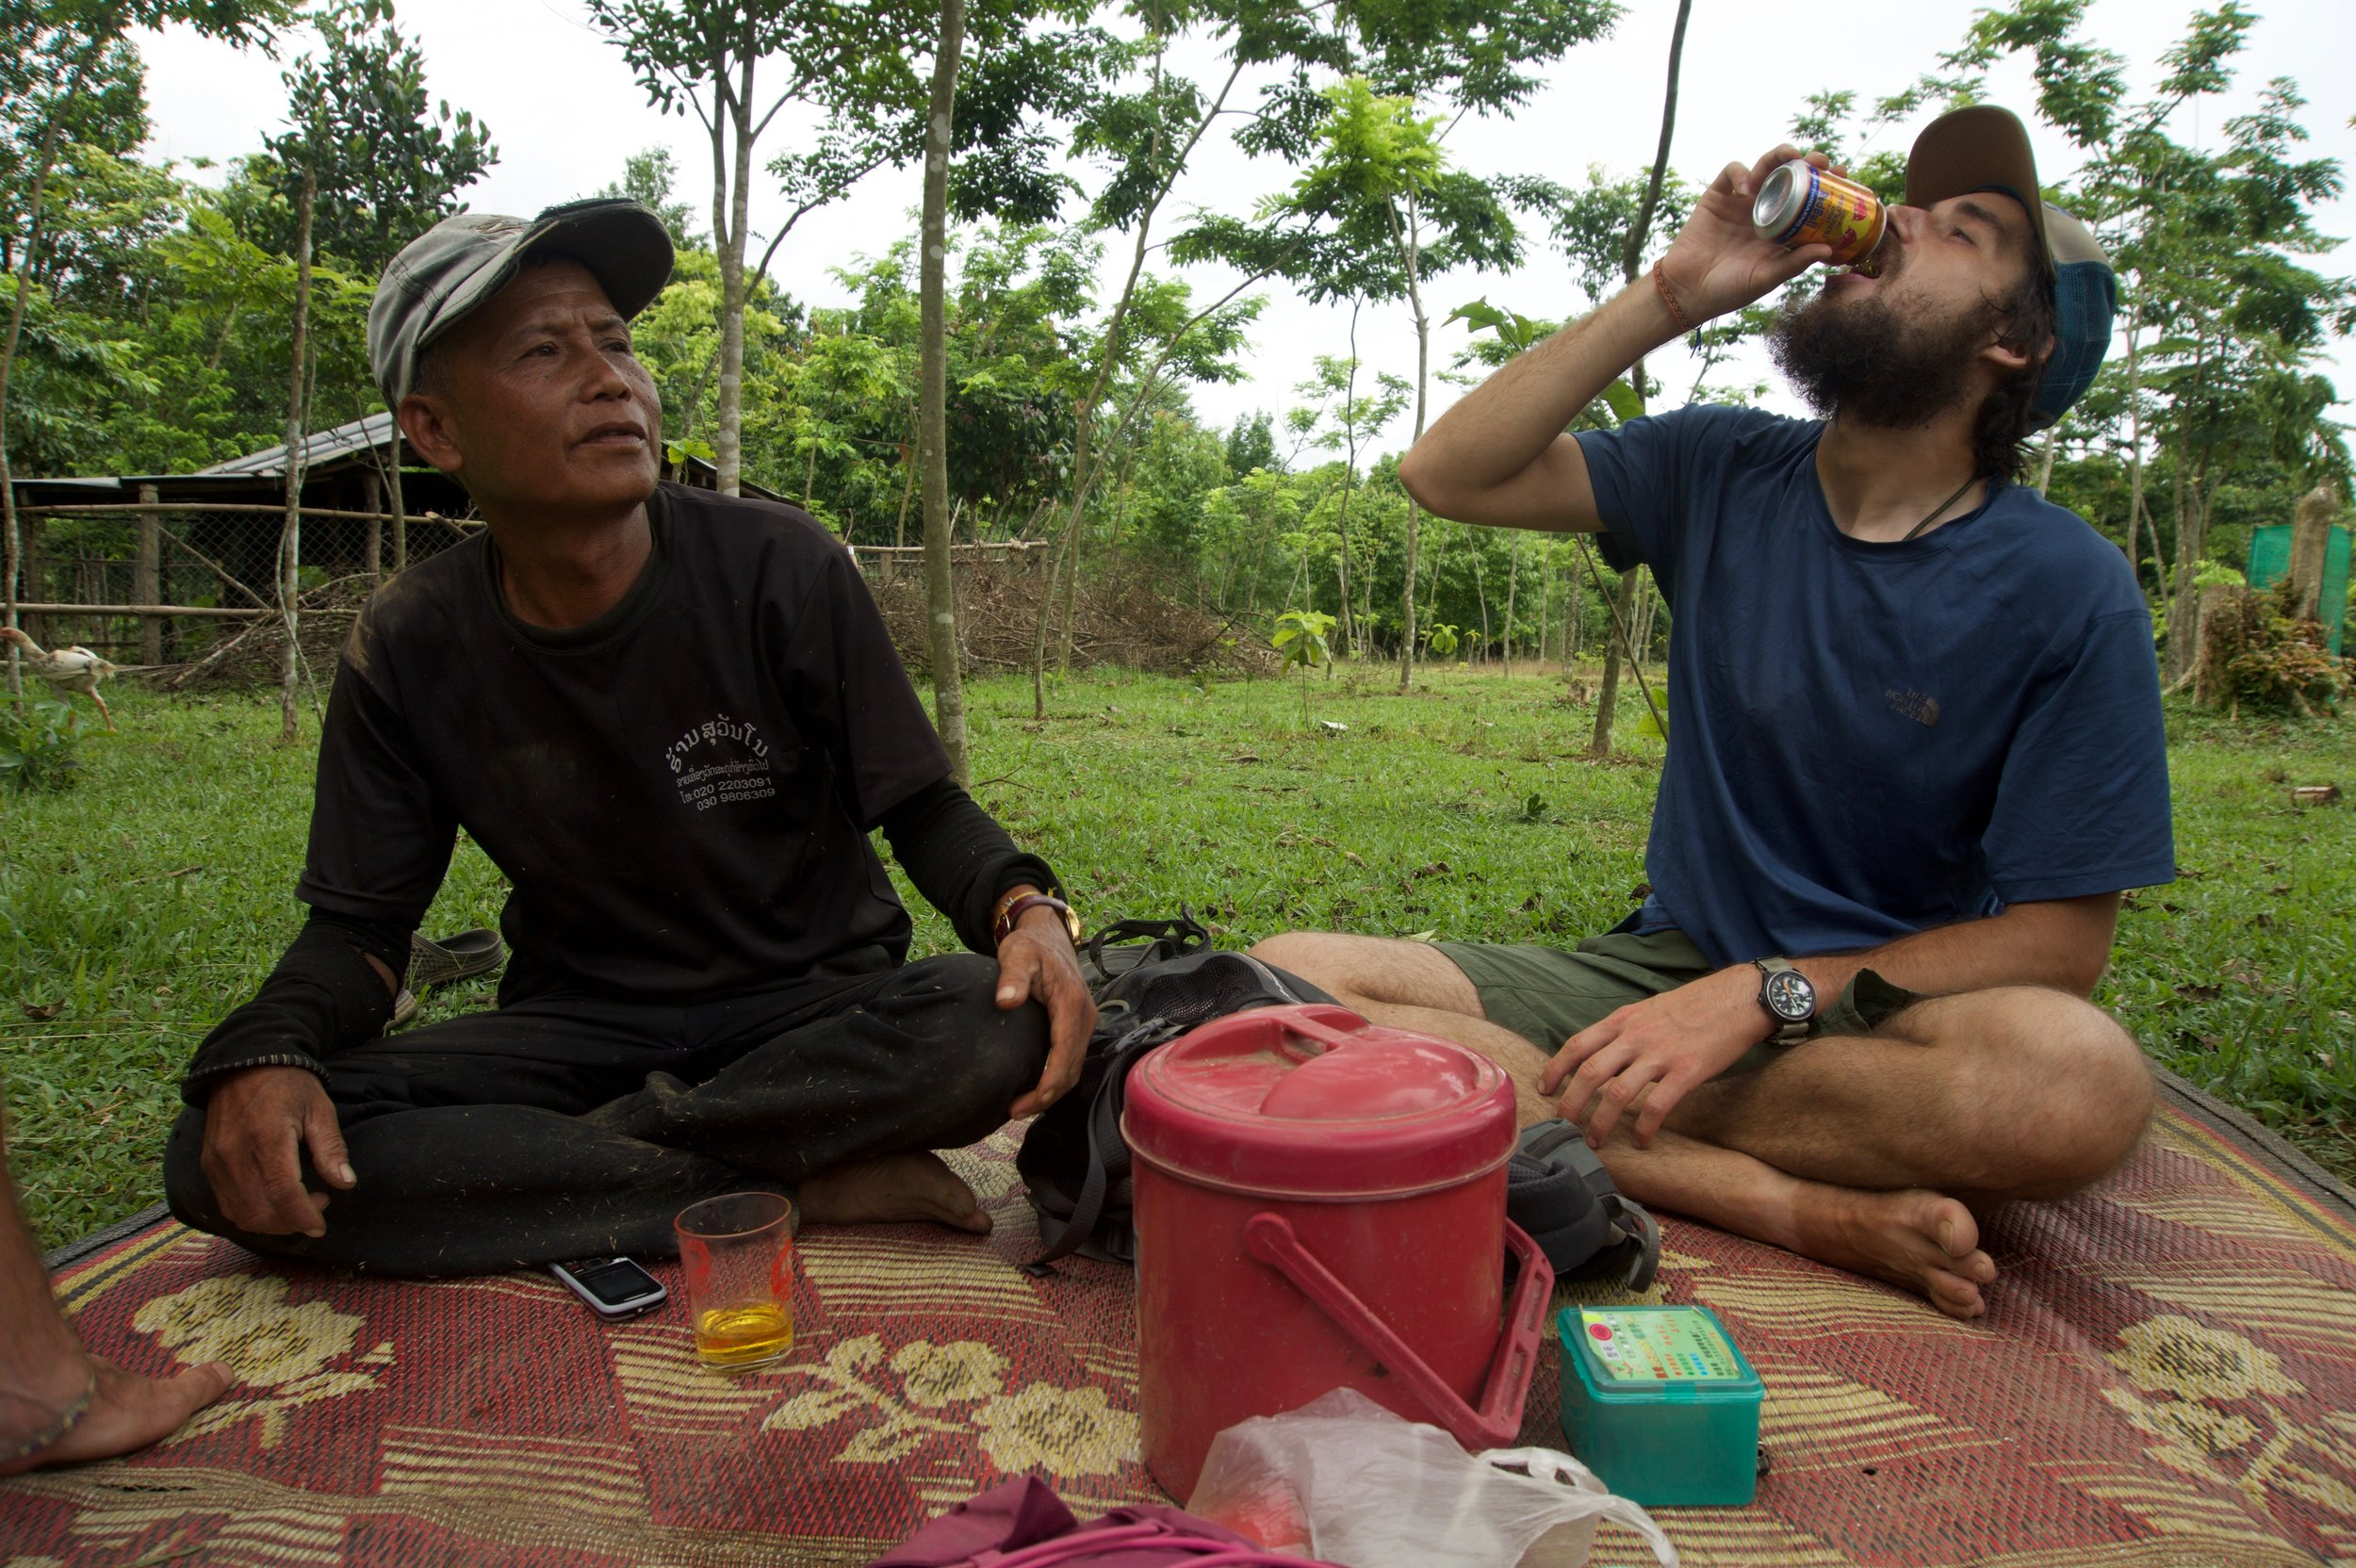 Afternoon picnic in the garden with Captain (Native Laotian) and Sebastian (guest at the guesthouse I was volunteering at). Kasi, Laos